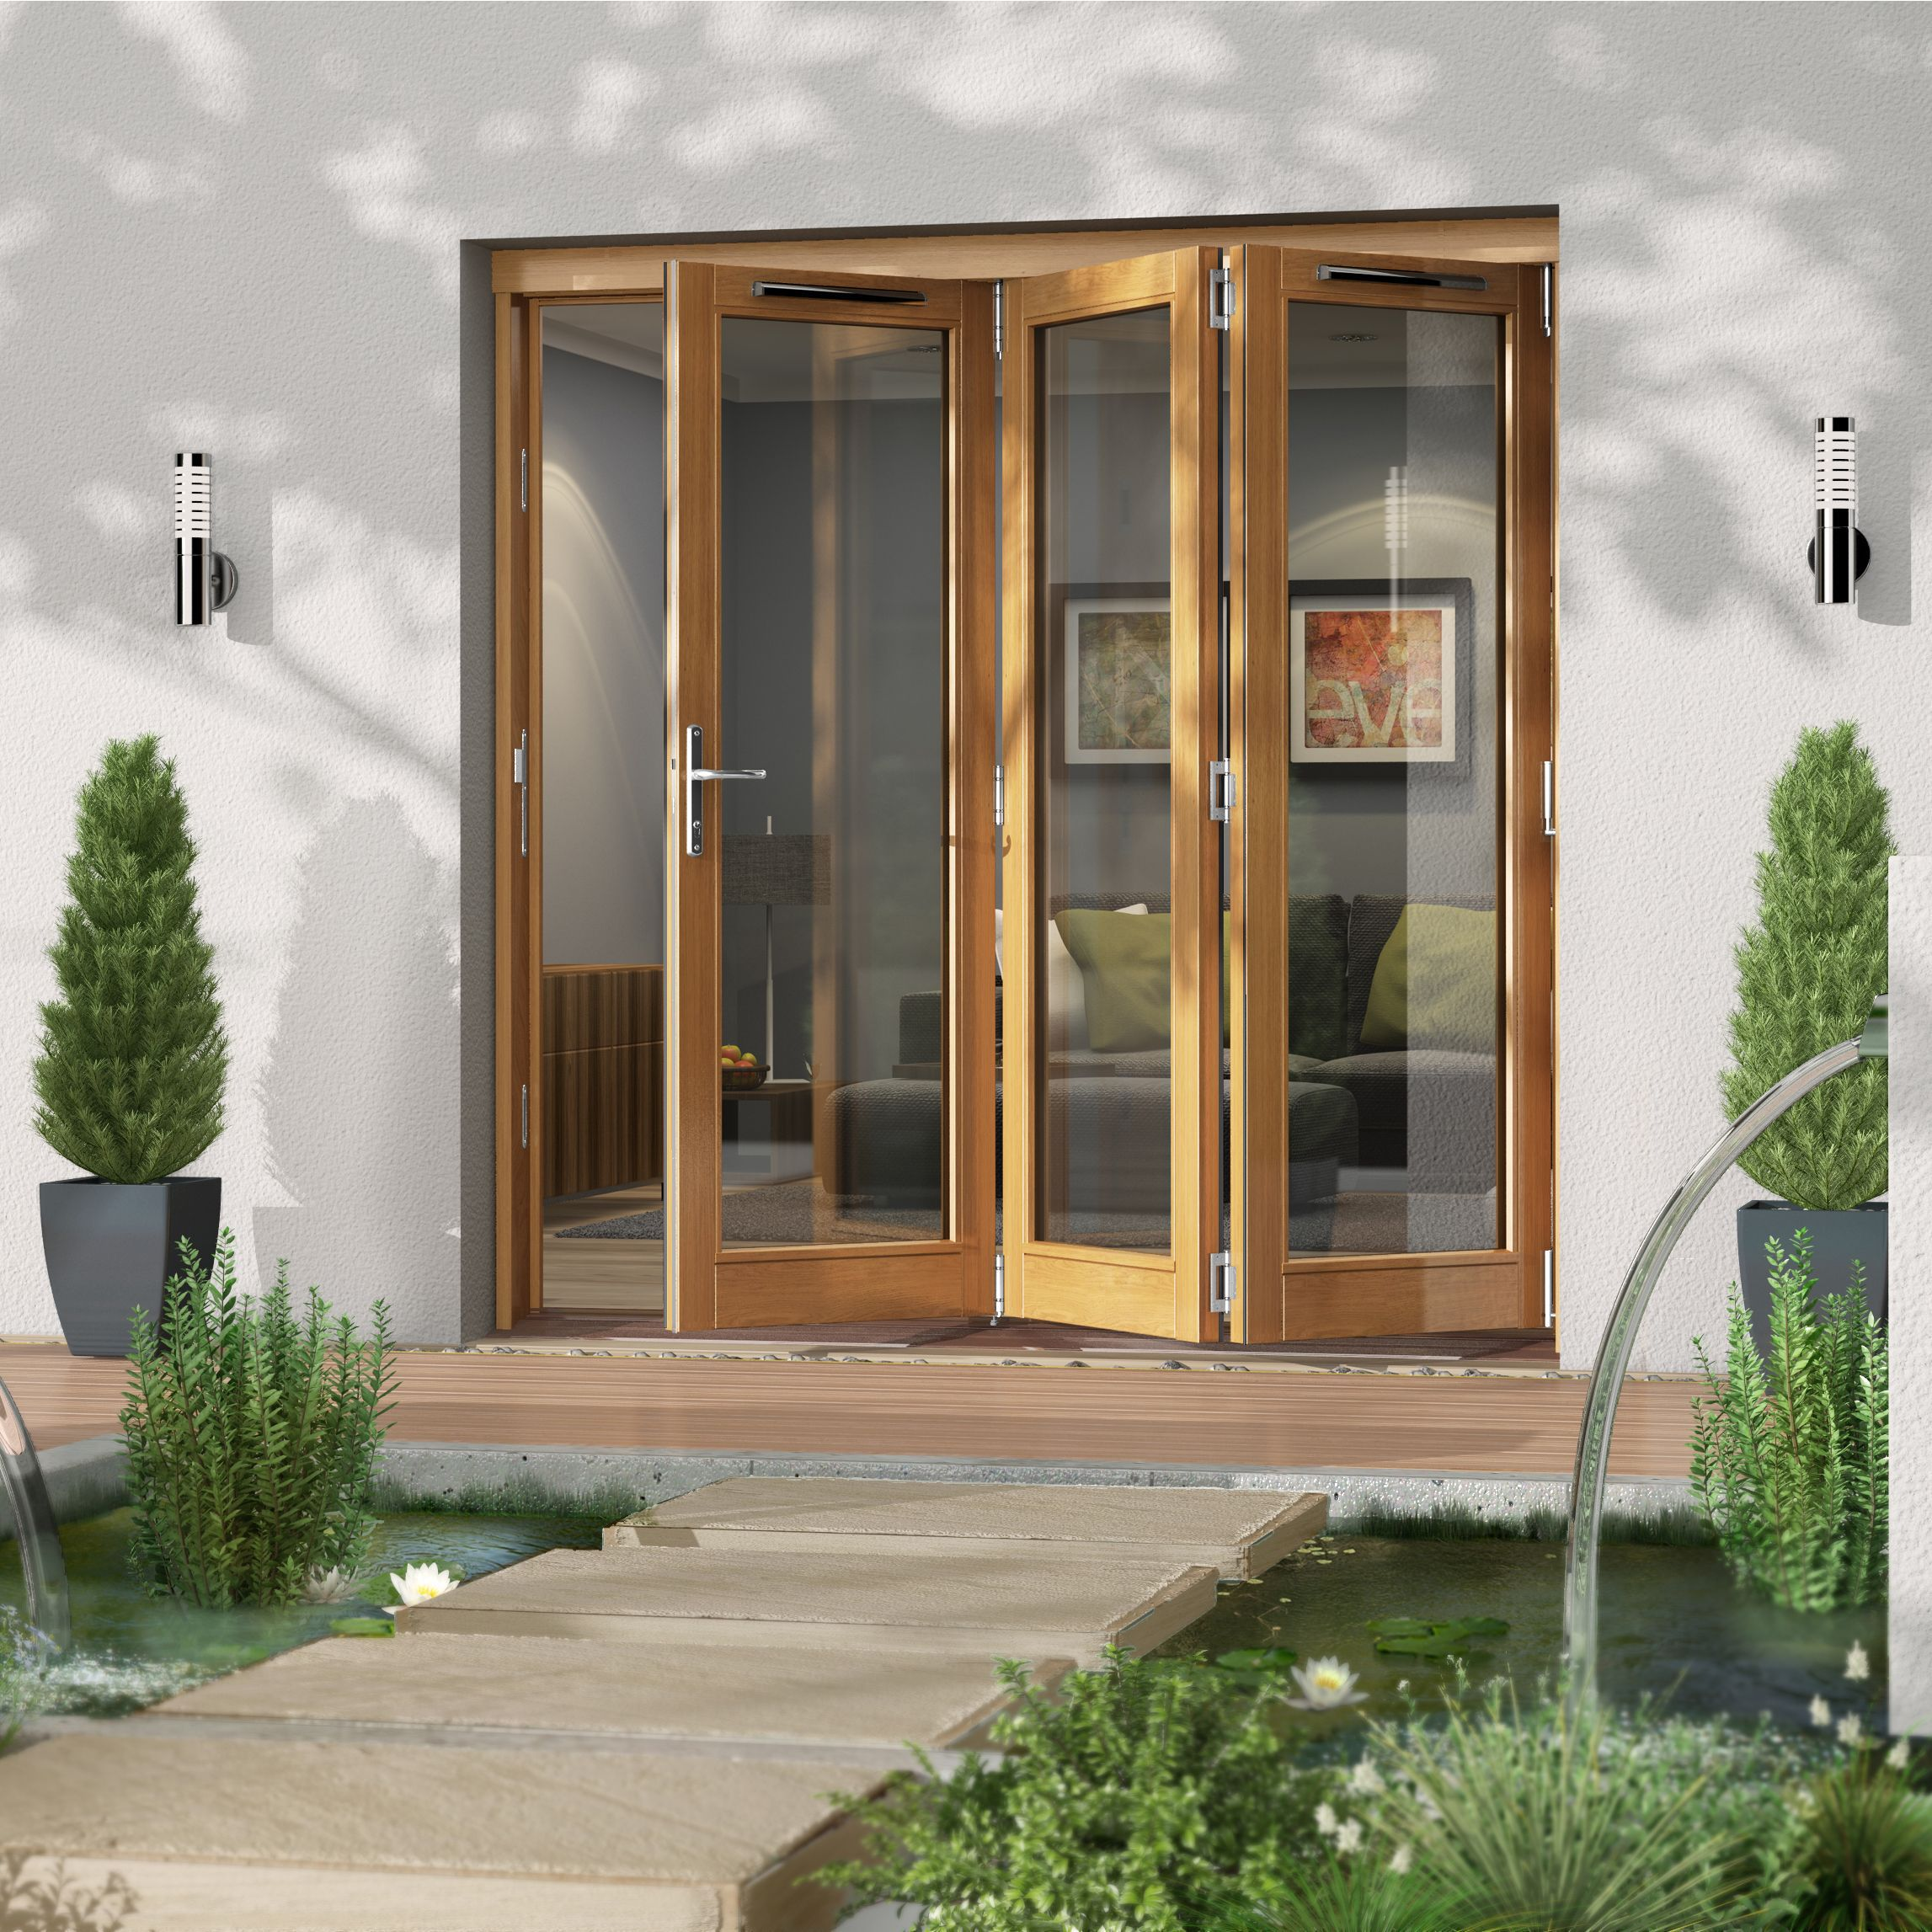 Diy Patio Door Installation: Golden Oak Timber Glazed Folding Patio Door, (H)2094mm (W